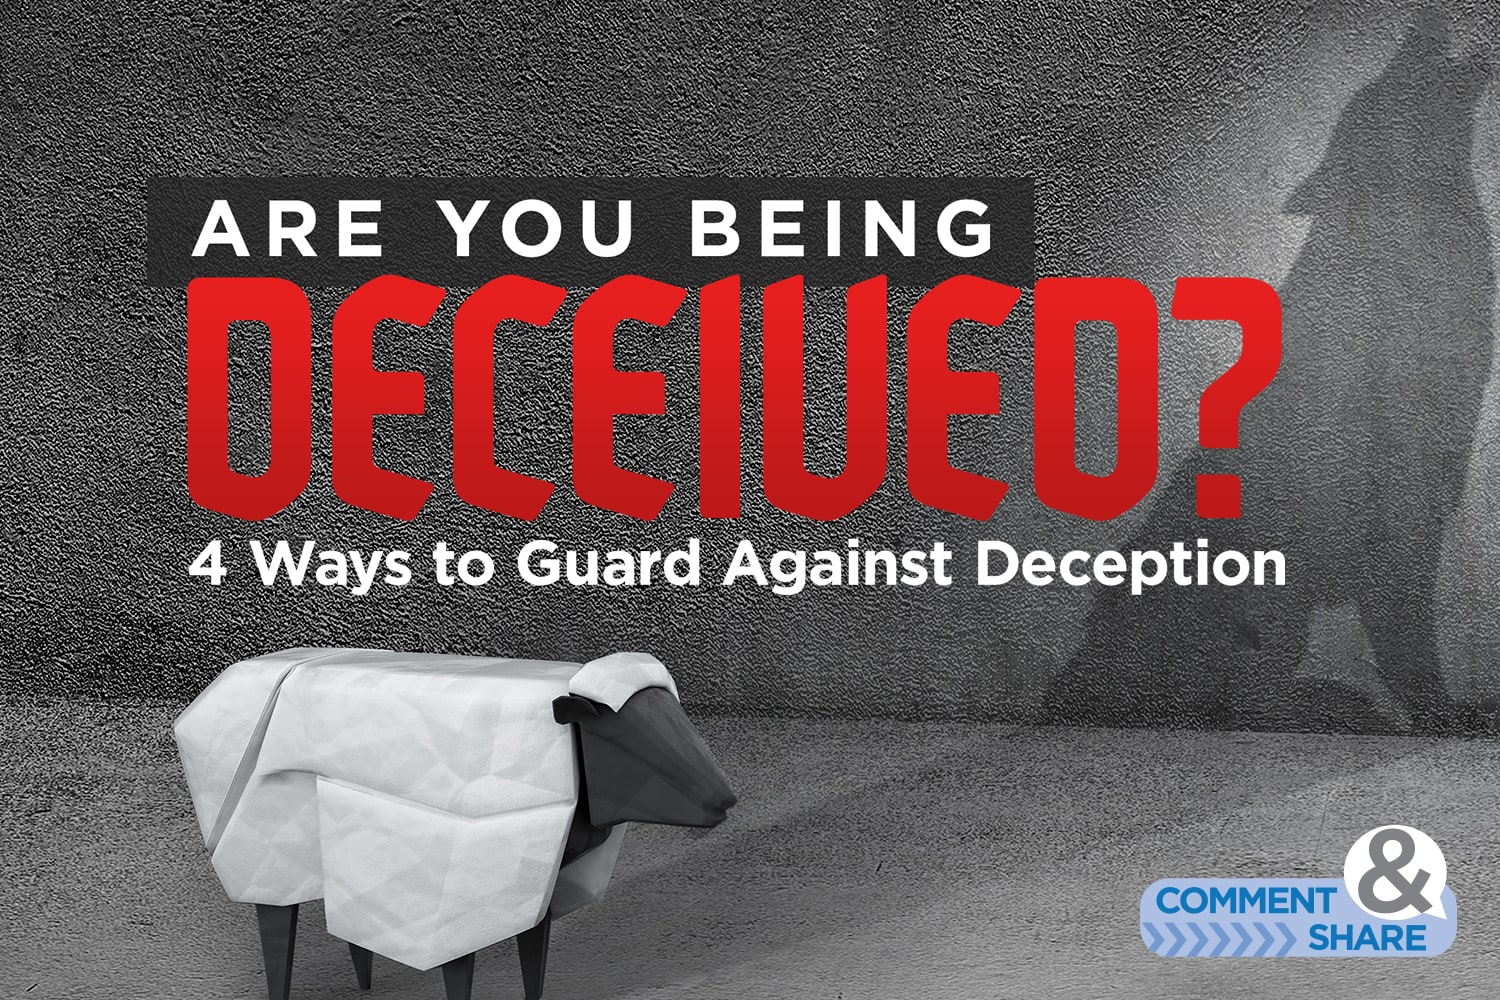 4 Ways to Guard Against Deception